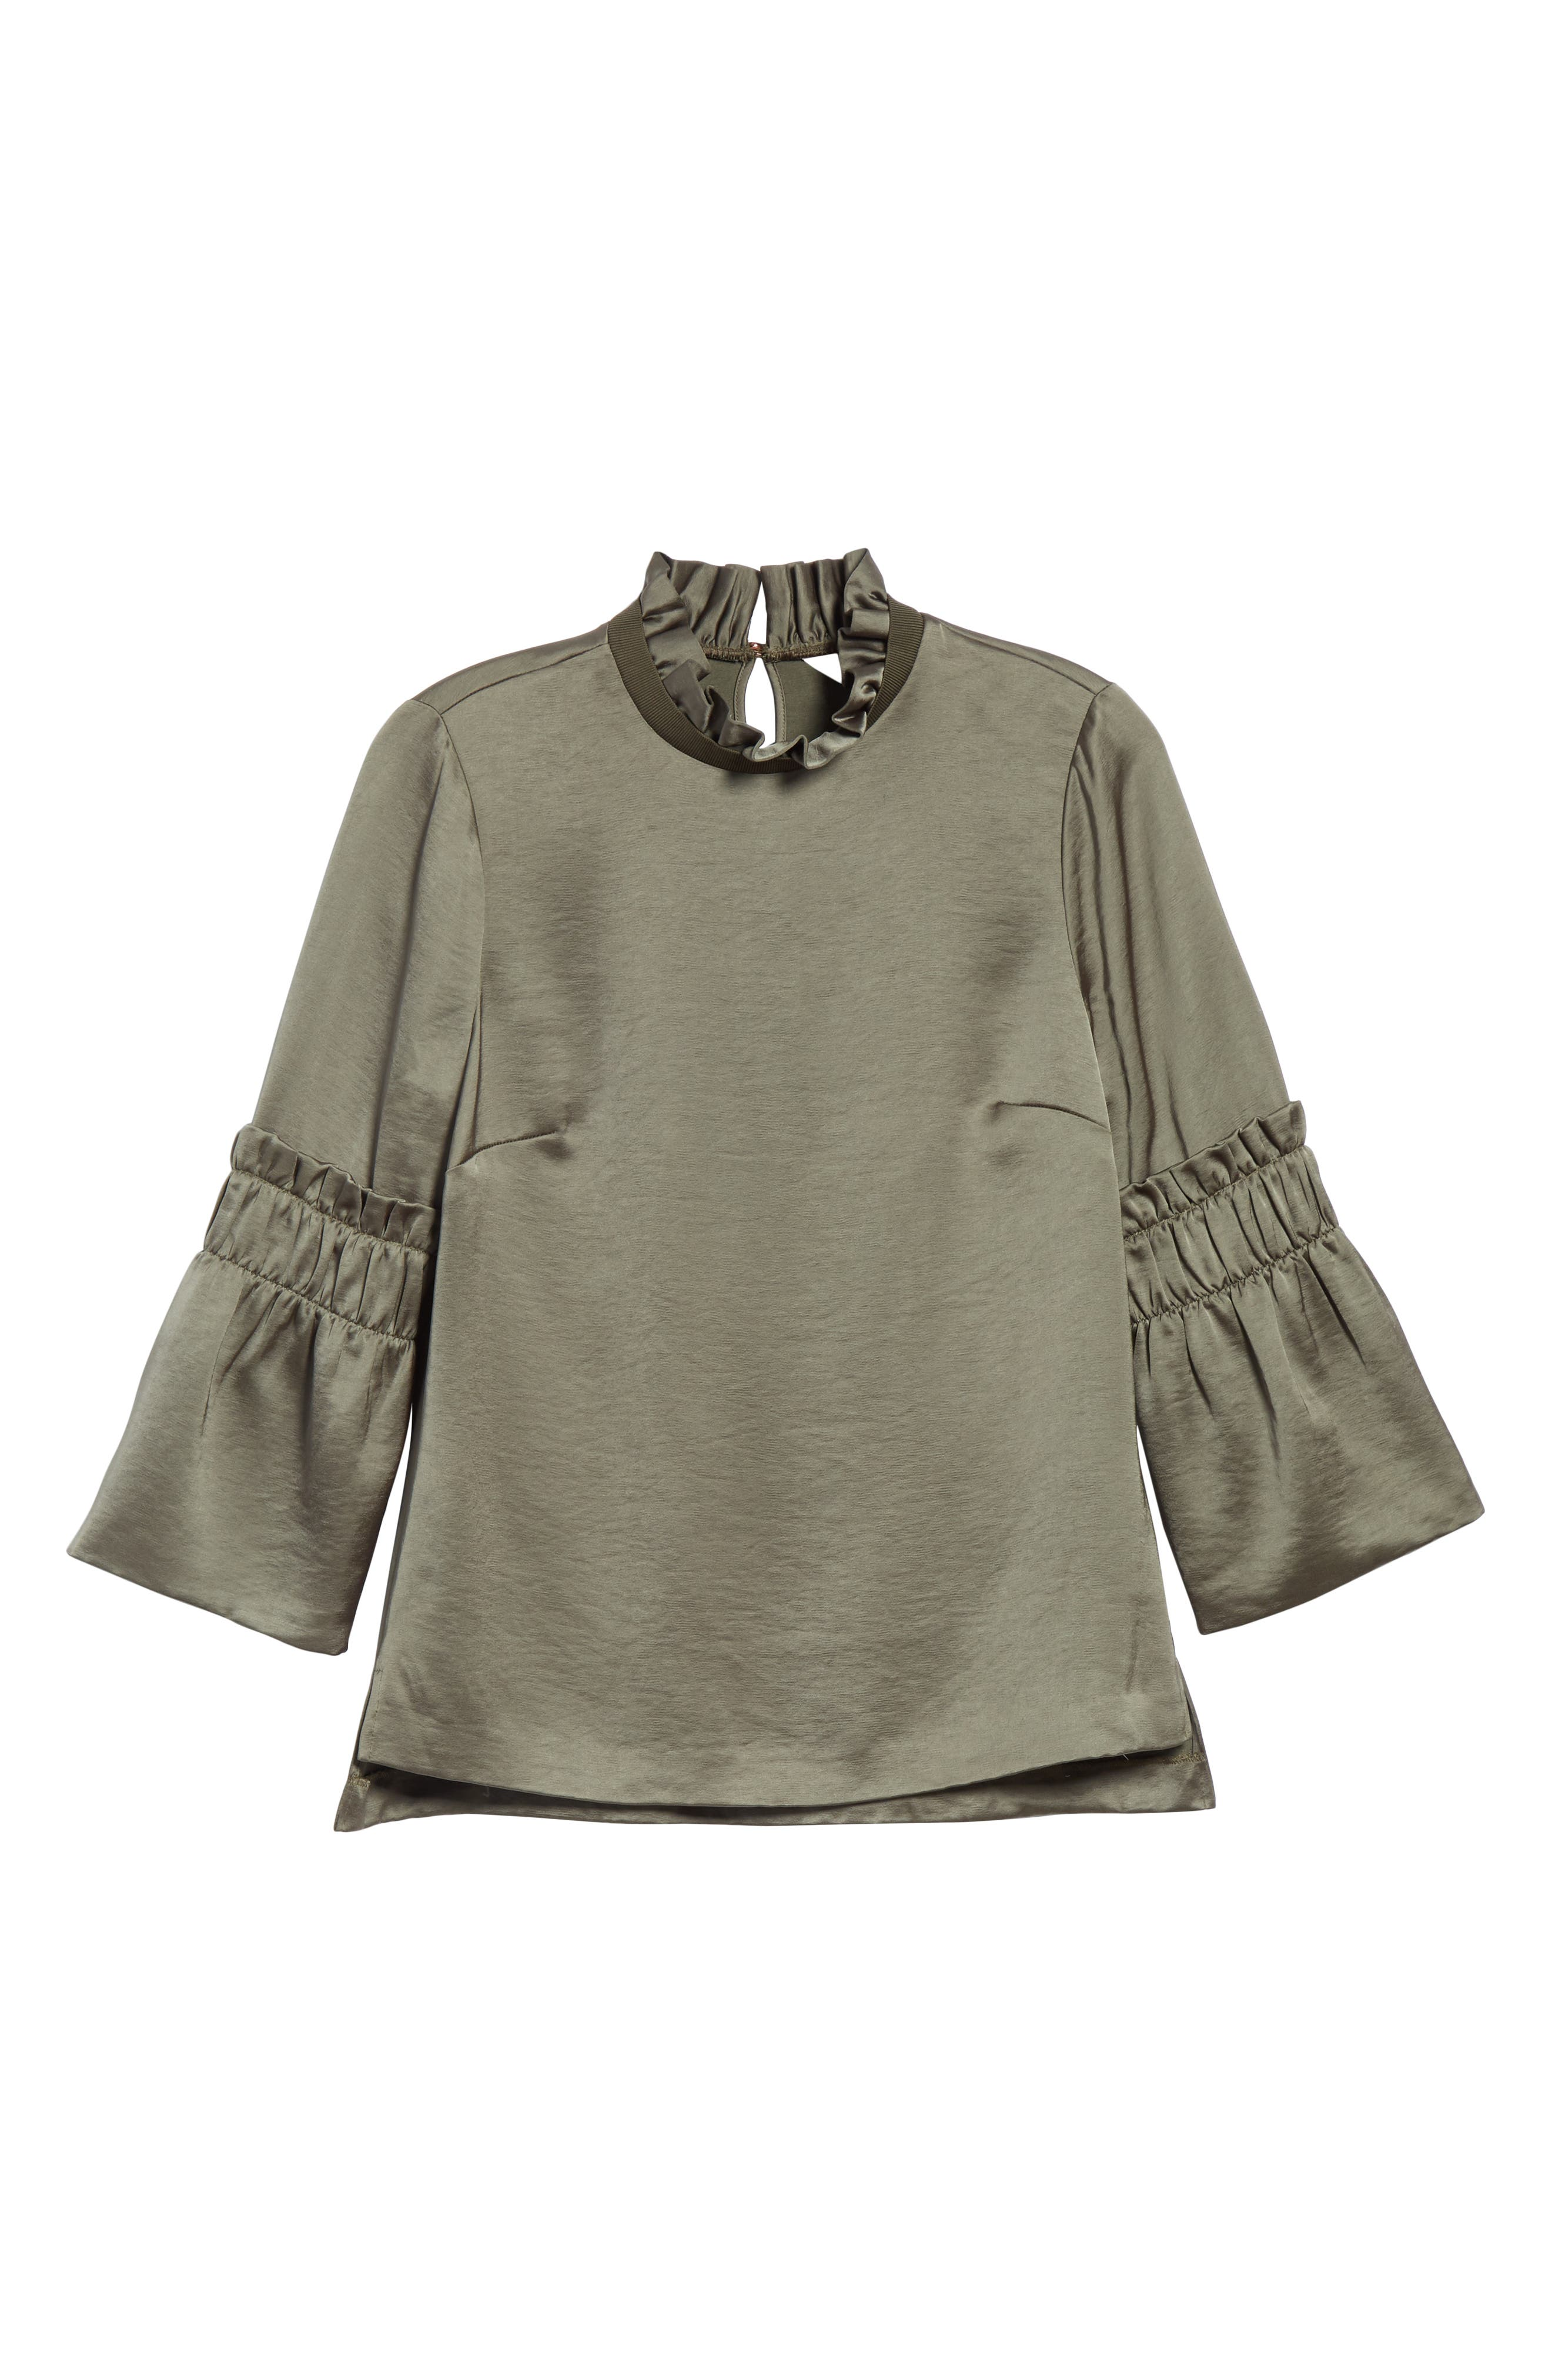 Myani Ruffle Hammered Satin Top,                             Alternate thumbnail 6, color,                             252